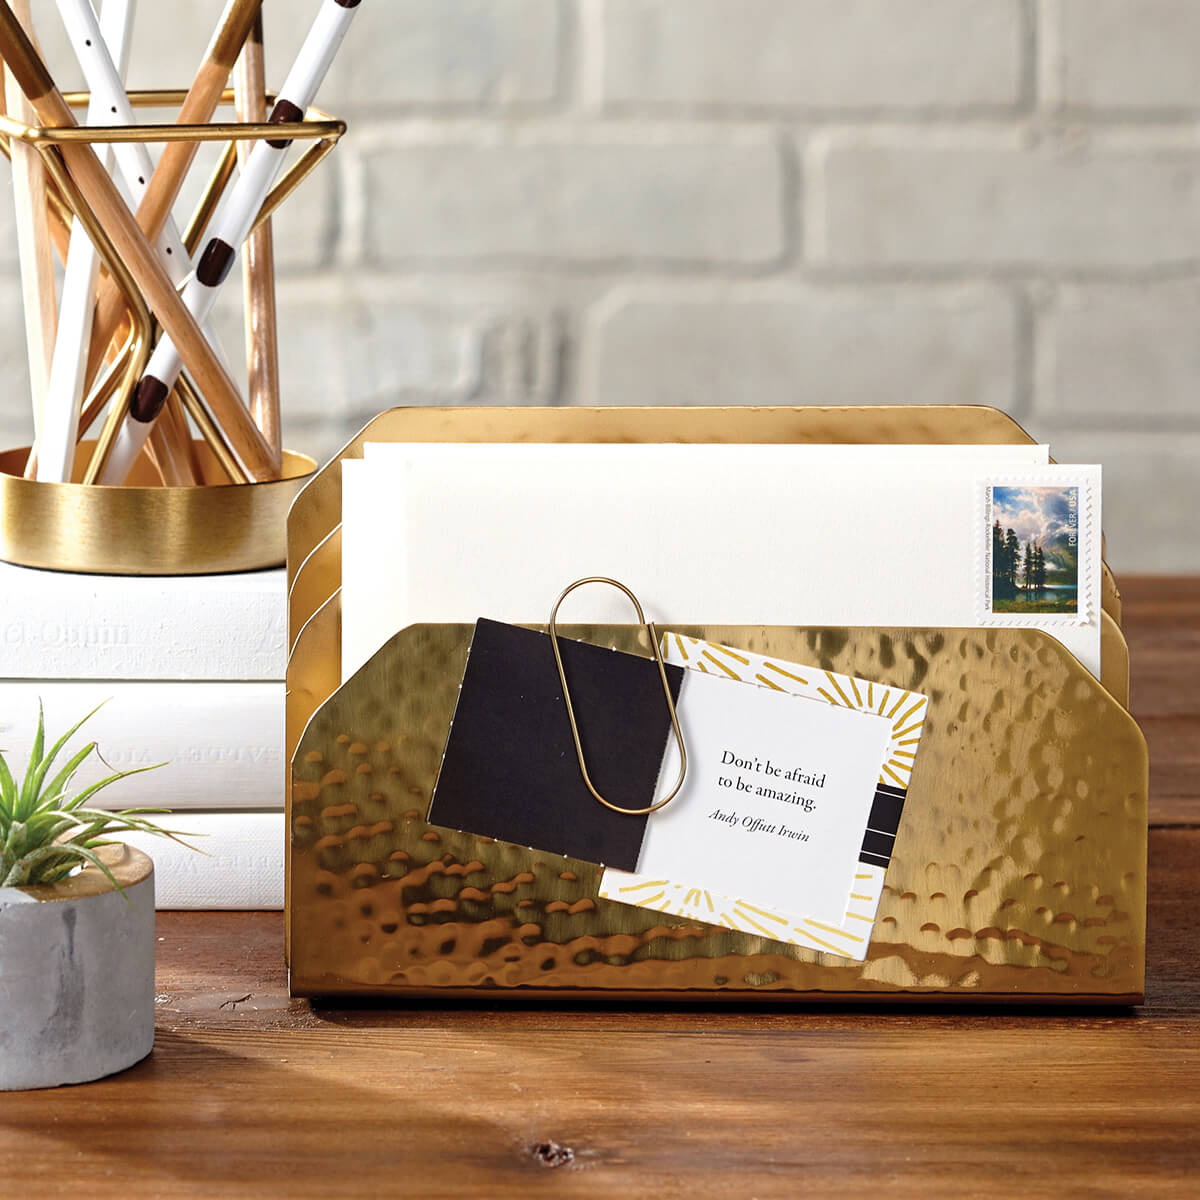 On a wooden table sits a golden holder with letters and a paperclip holding a card on it. A small plant add some green to the image and a pencil holder sits on a small ledge on the back left of the photo, in front of a gray brick wall.